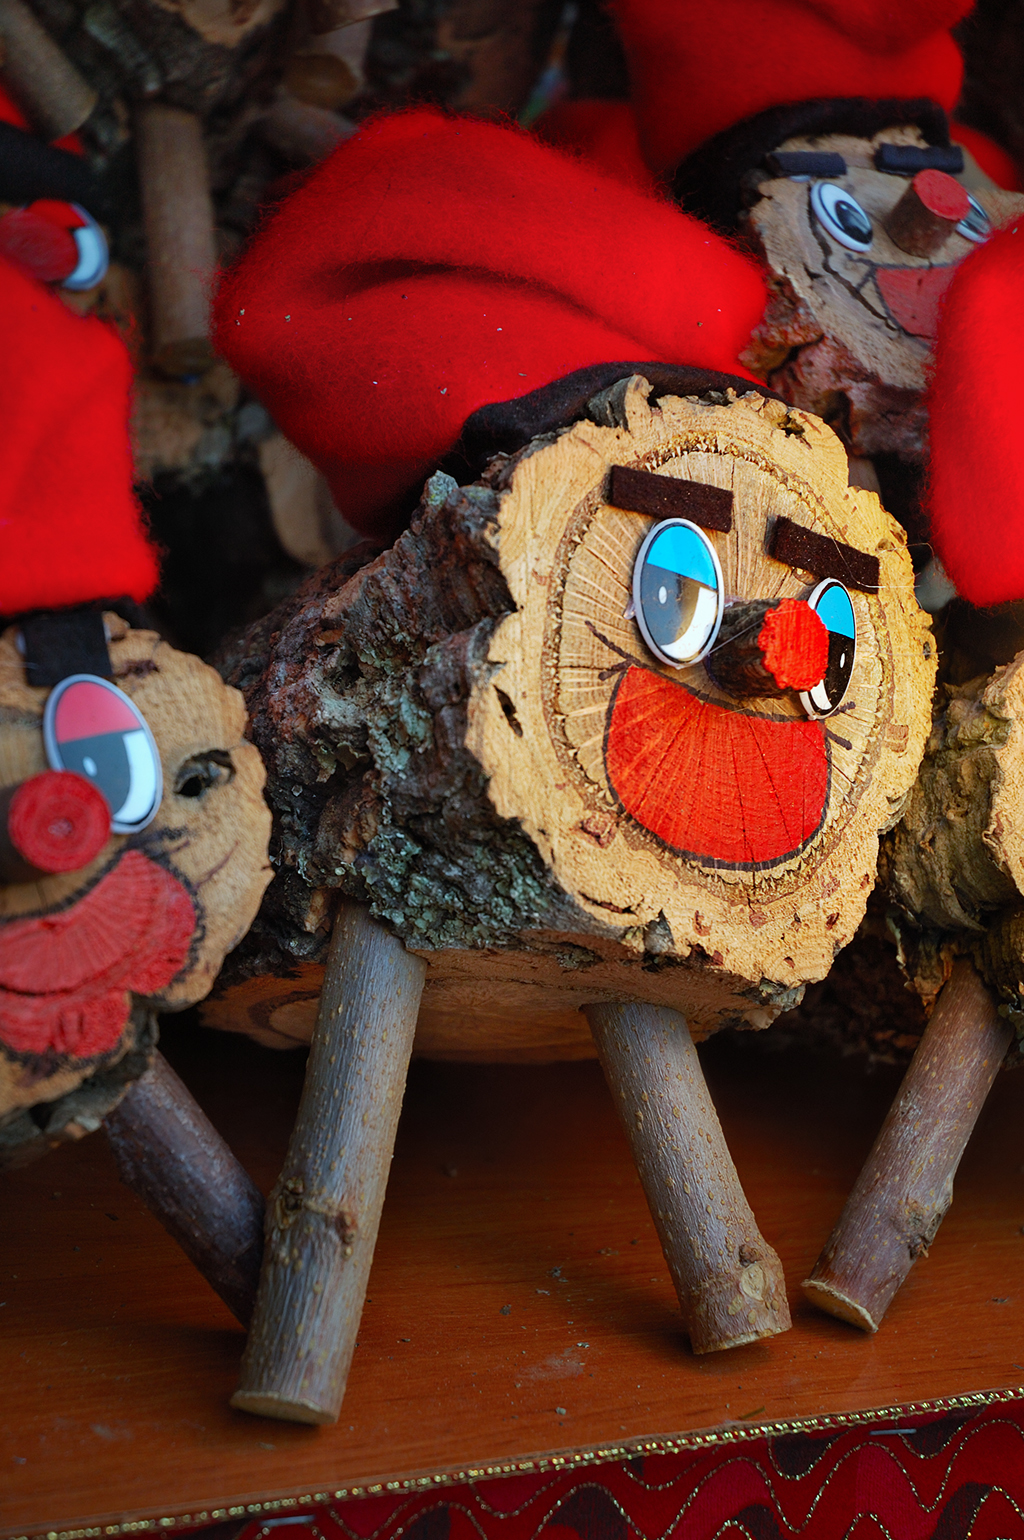 Cagatio or Pooping Log, A Christmas Tradition in Catalonia